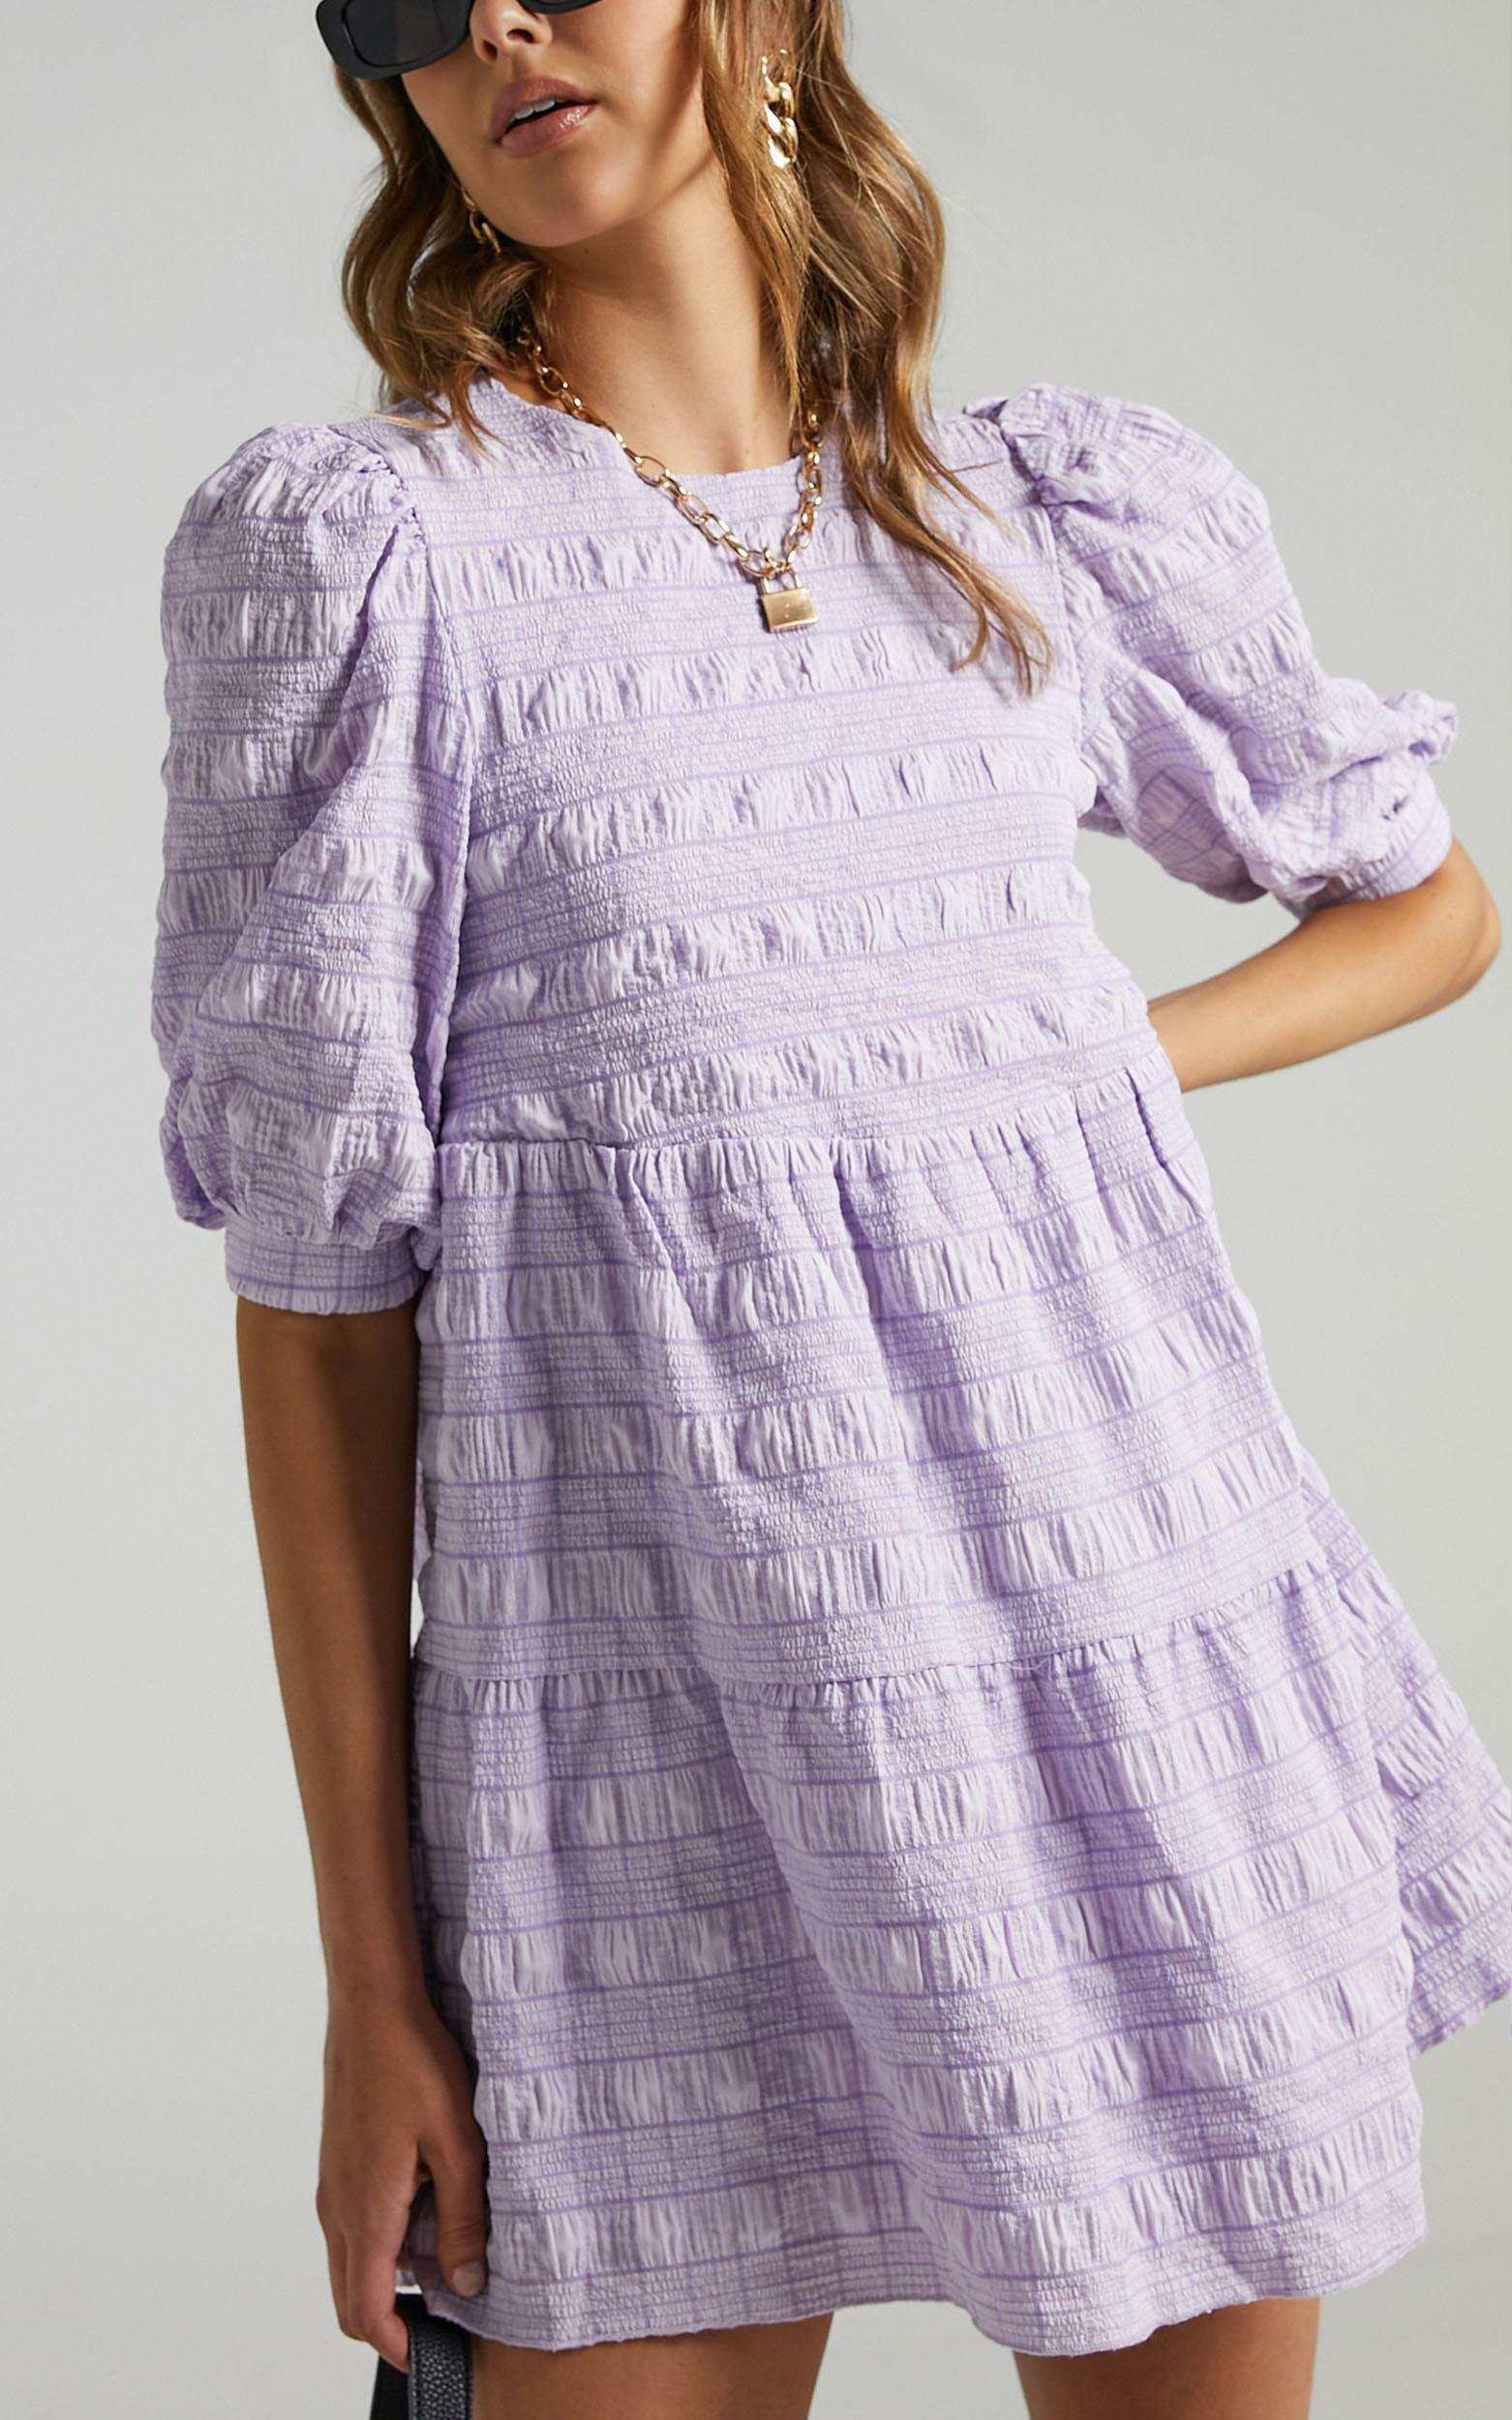 Darcia Dress in Lilac Check - 6 (XS), PRP3, hi-res image number null